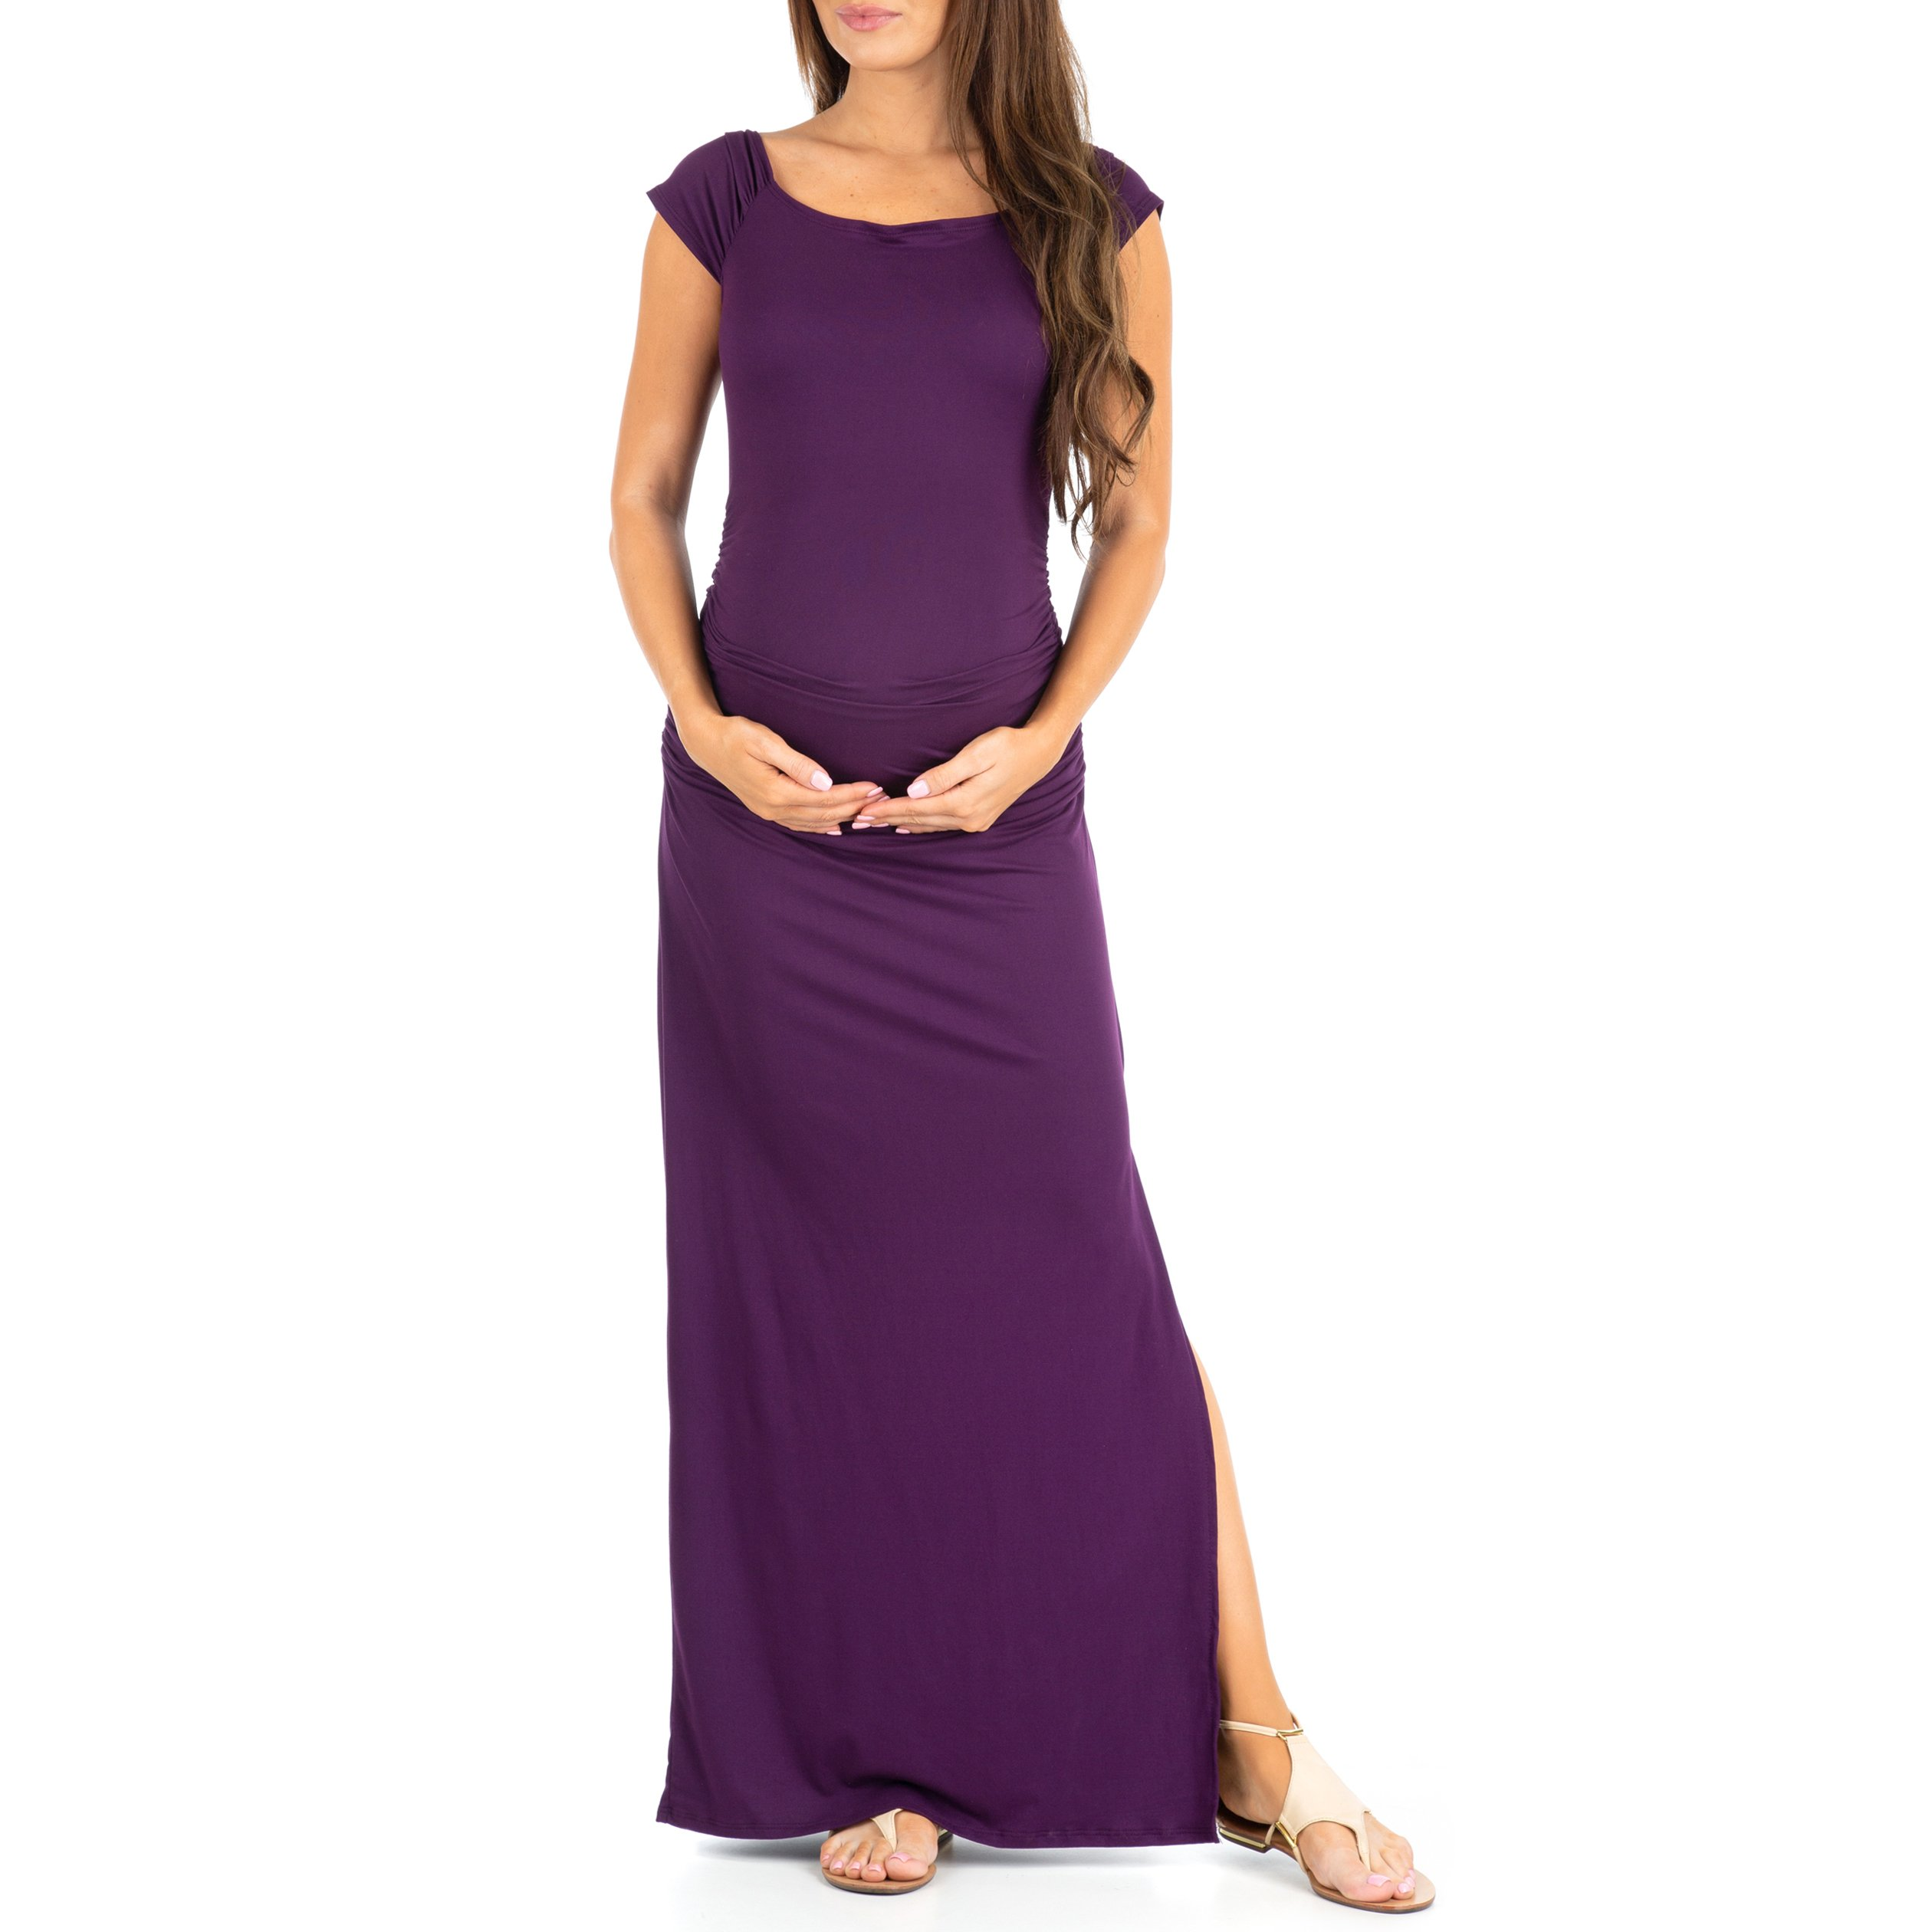 Shortsleeve Ruched Bodycon Maternity Dress with Side Slits